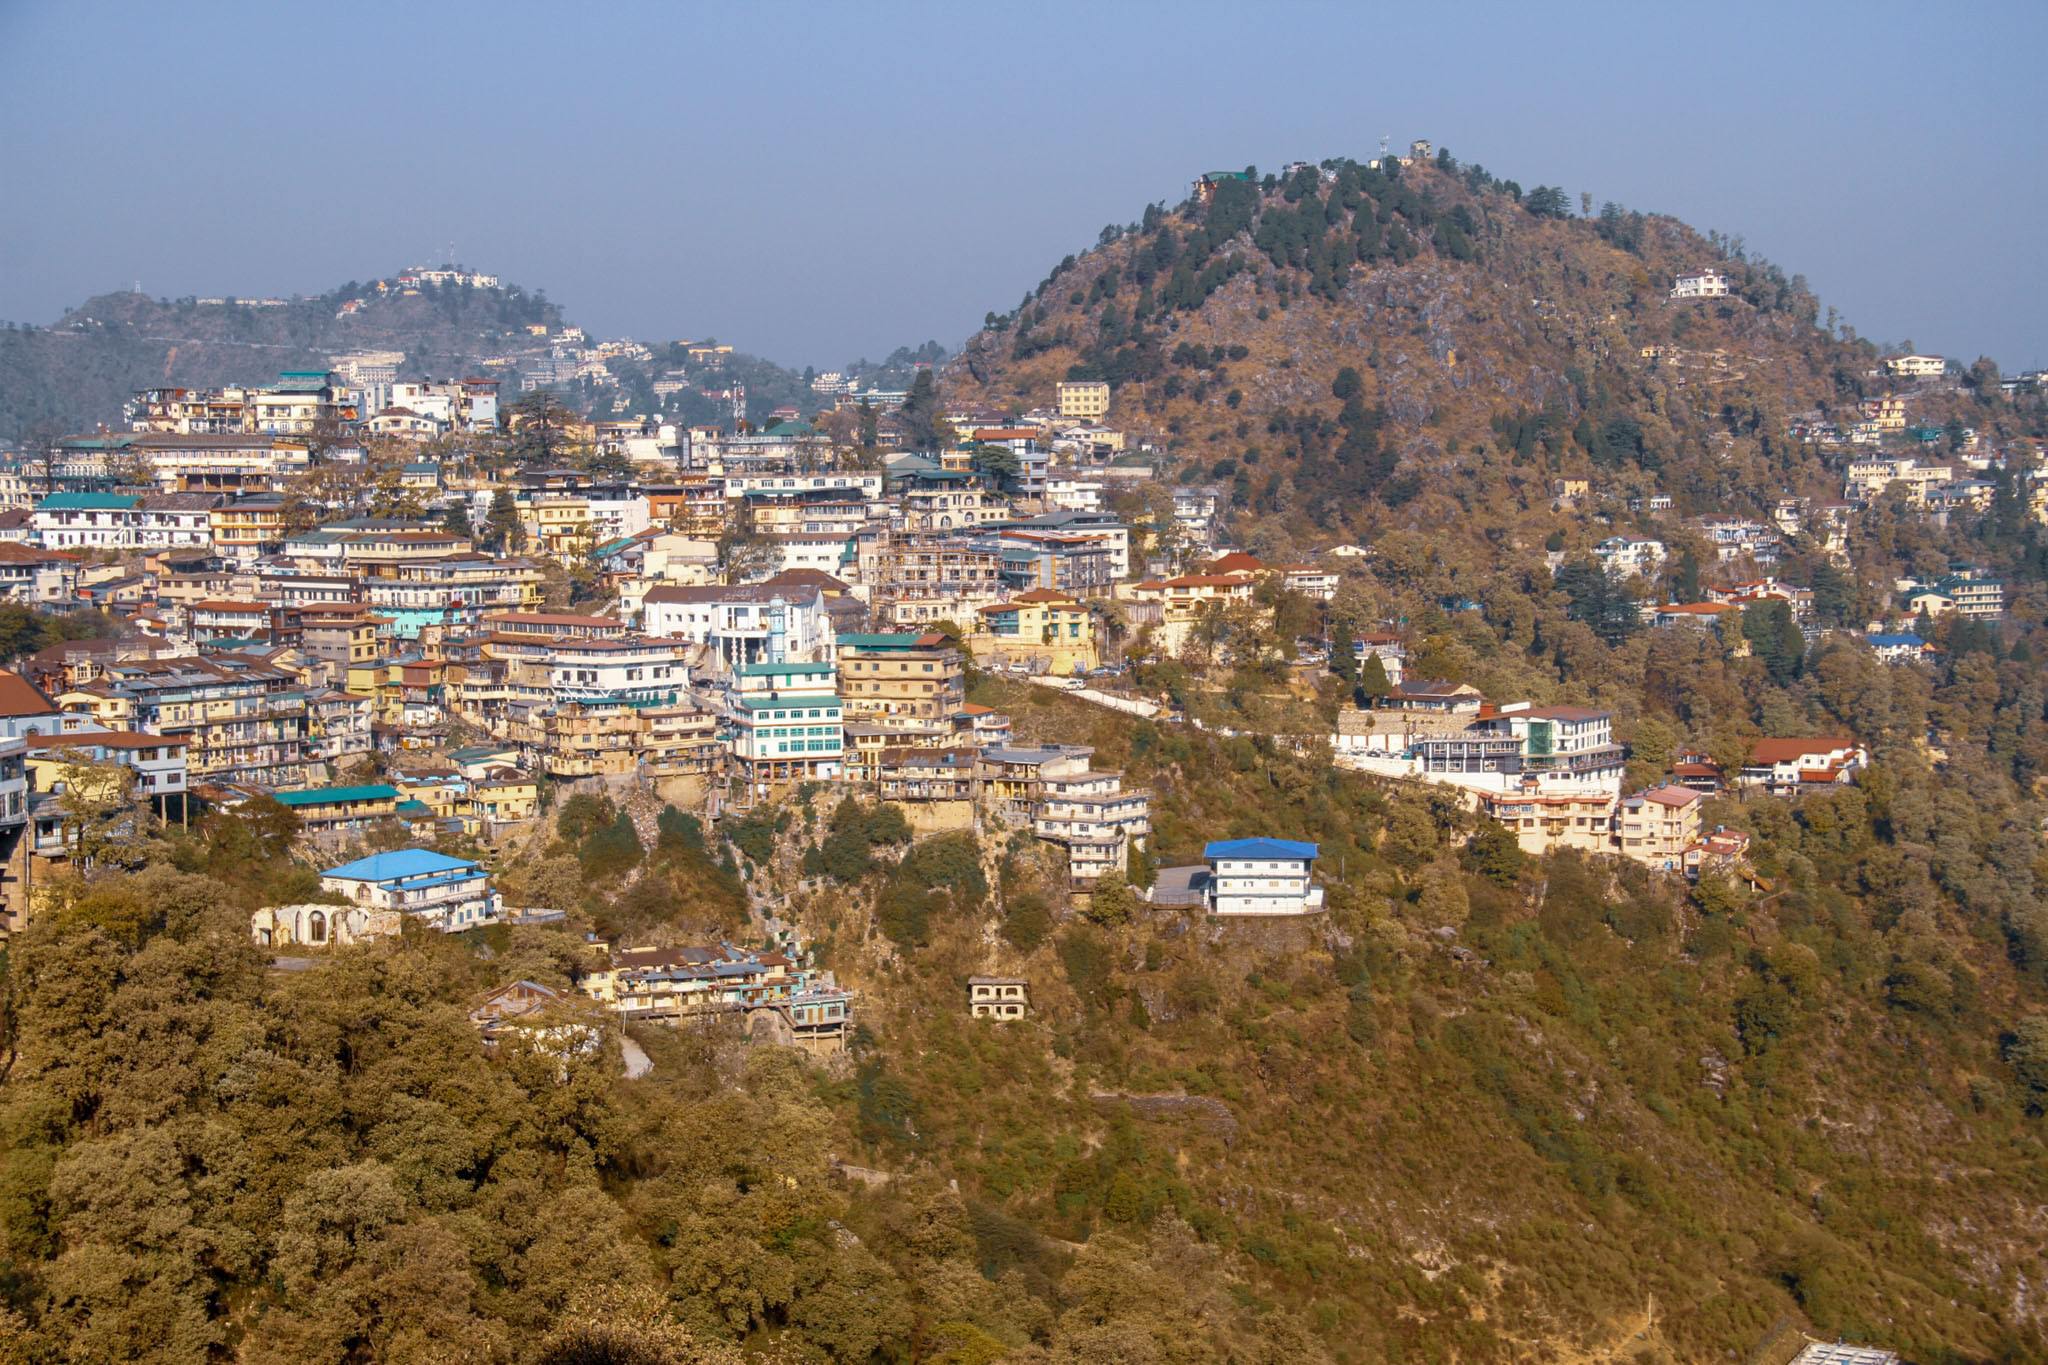 Mussoorie Travel Guide - Your Escape to the Queen of Hills